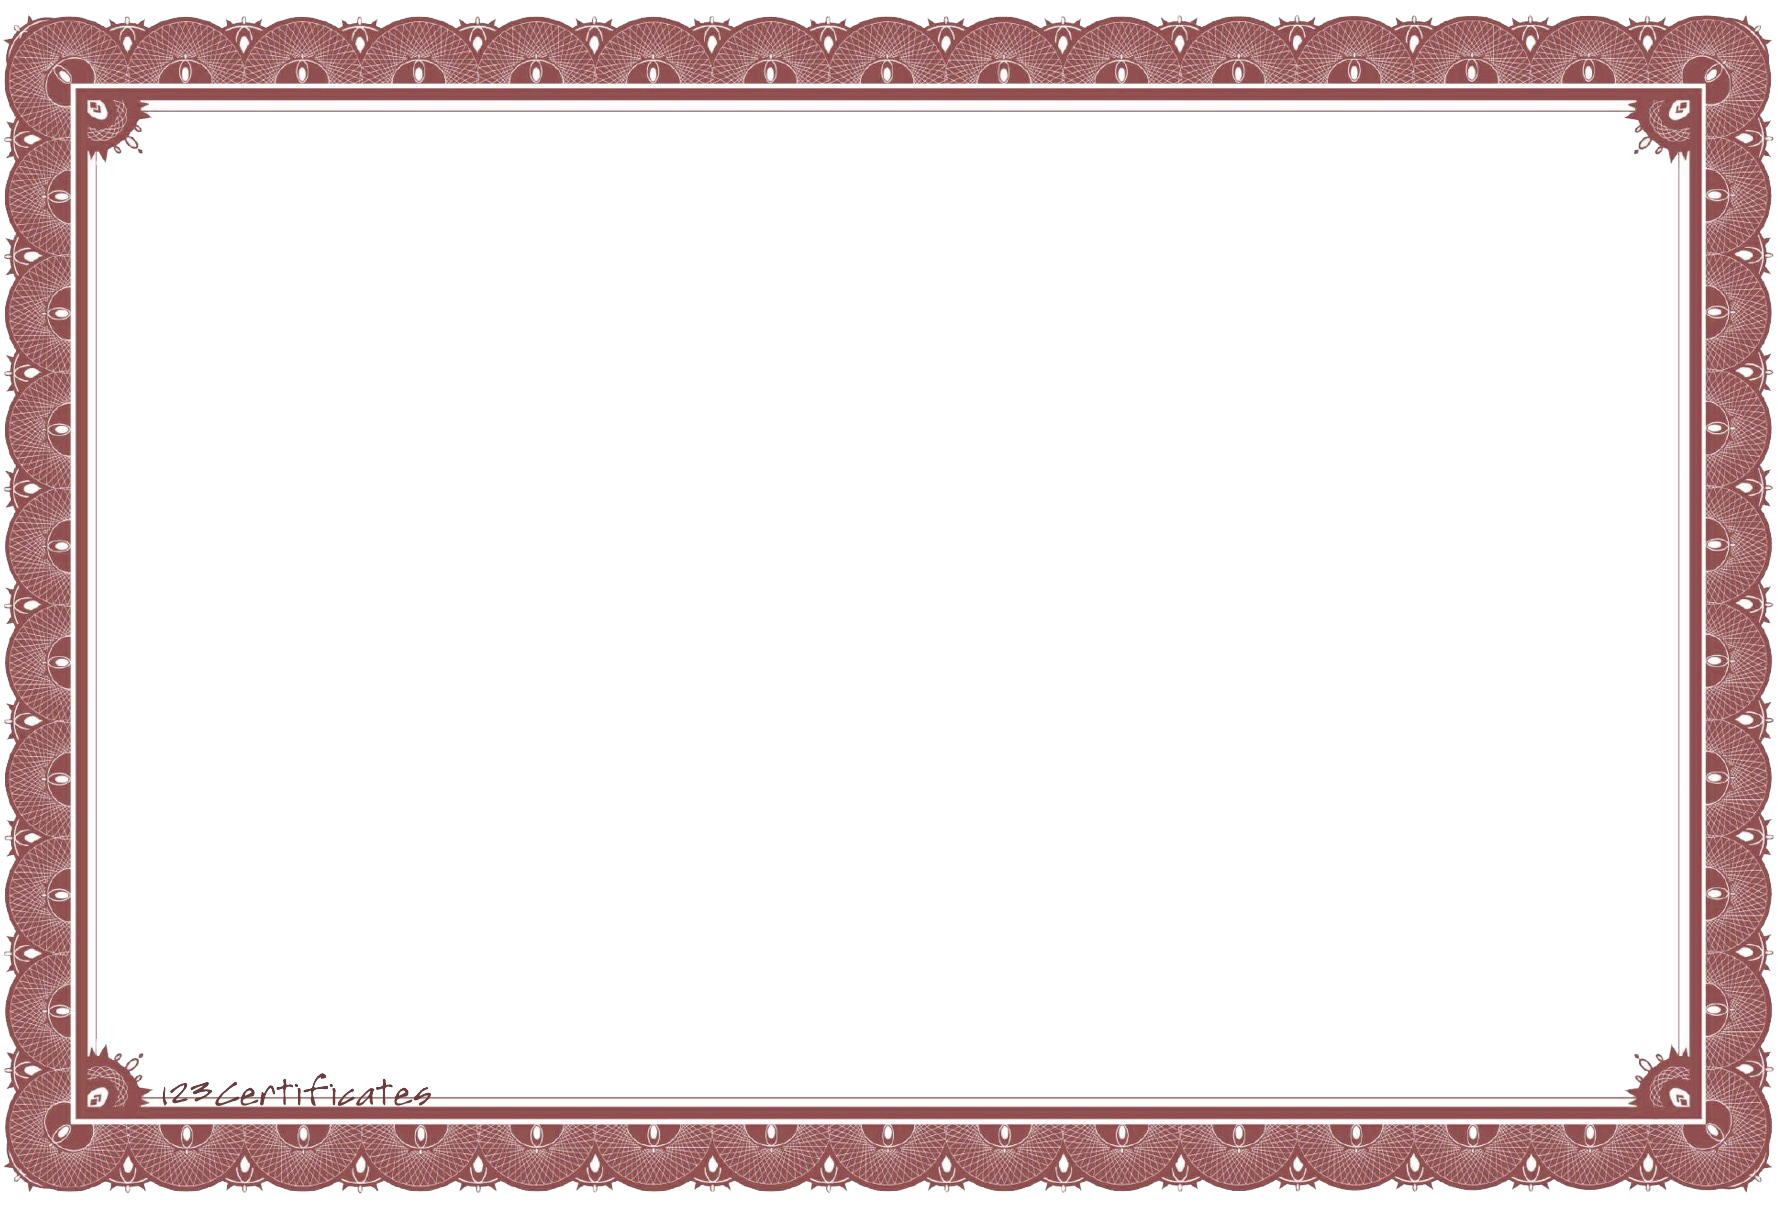 Certificate frames png. Template transparent images download